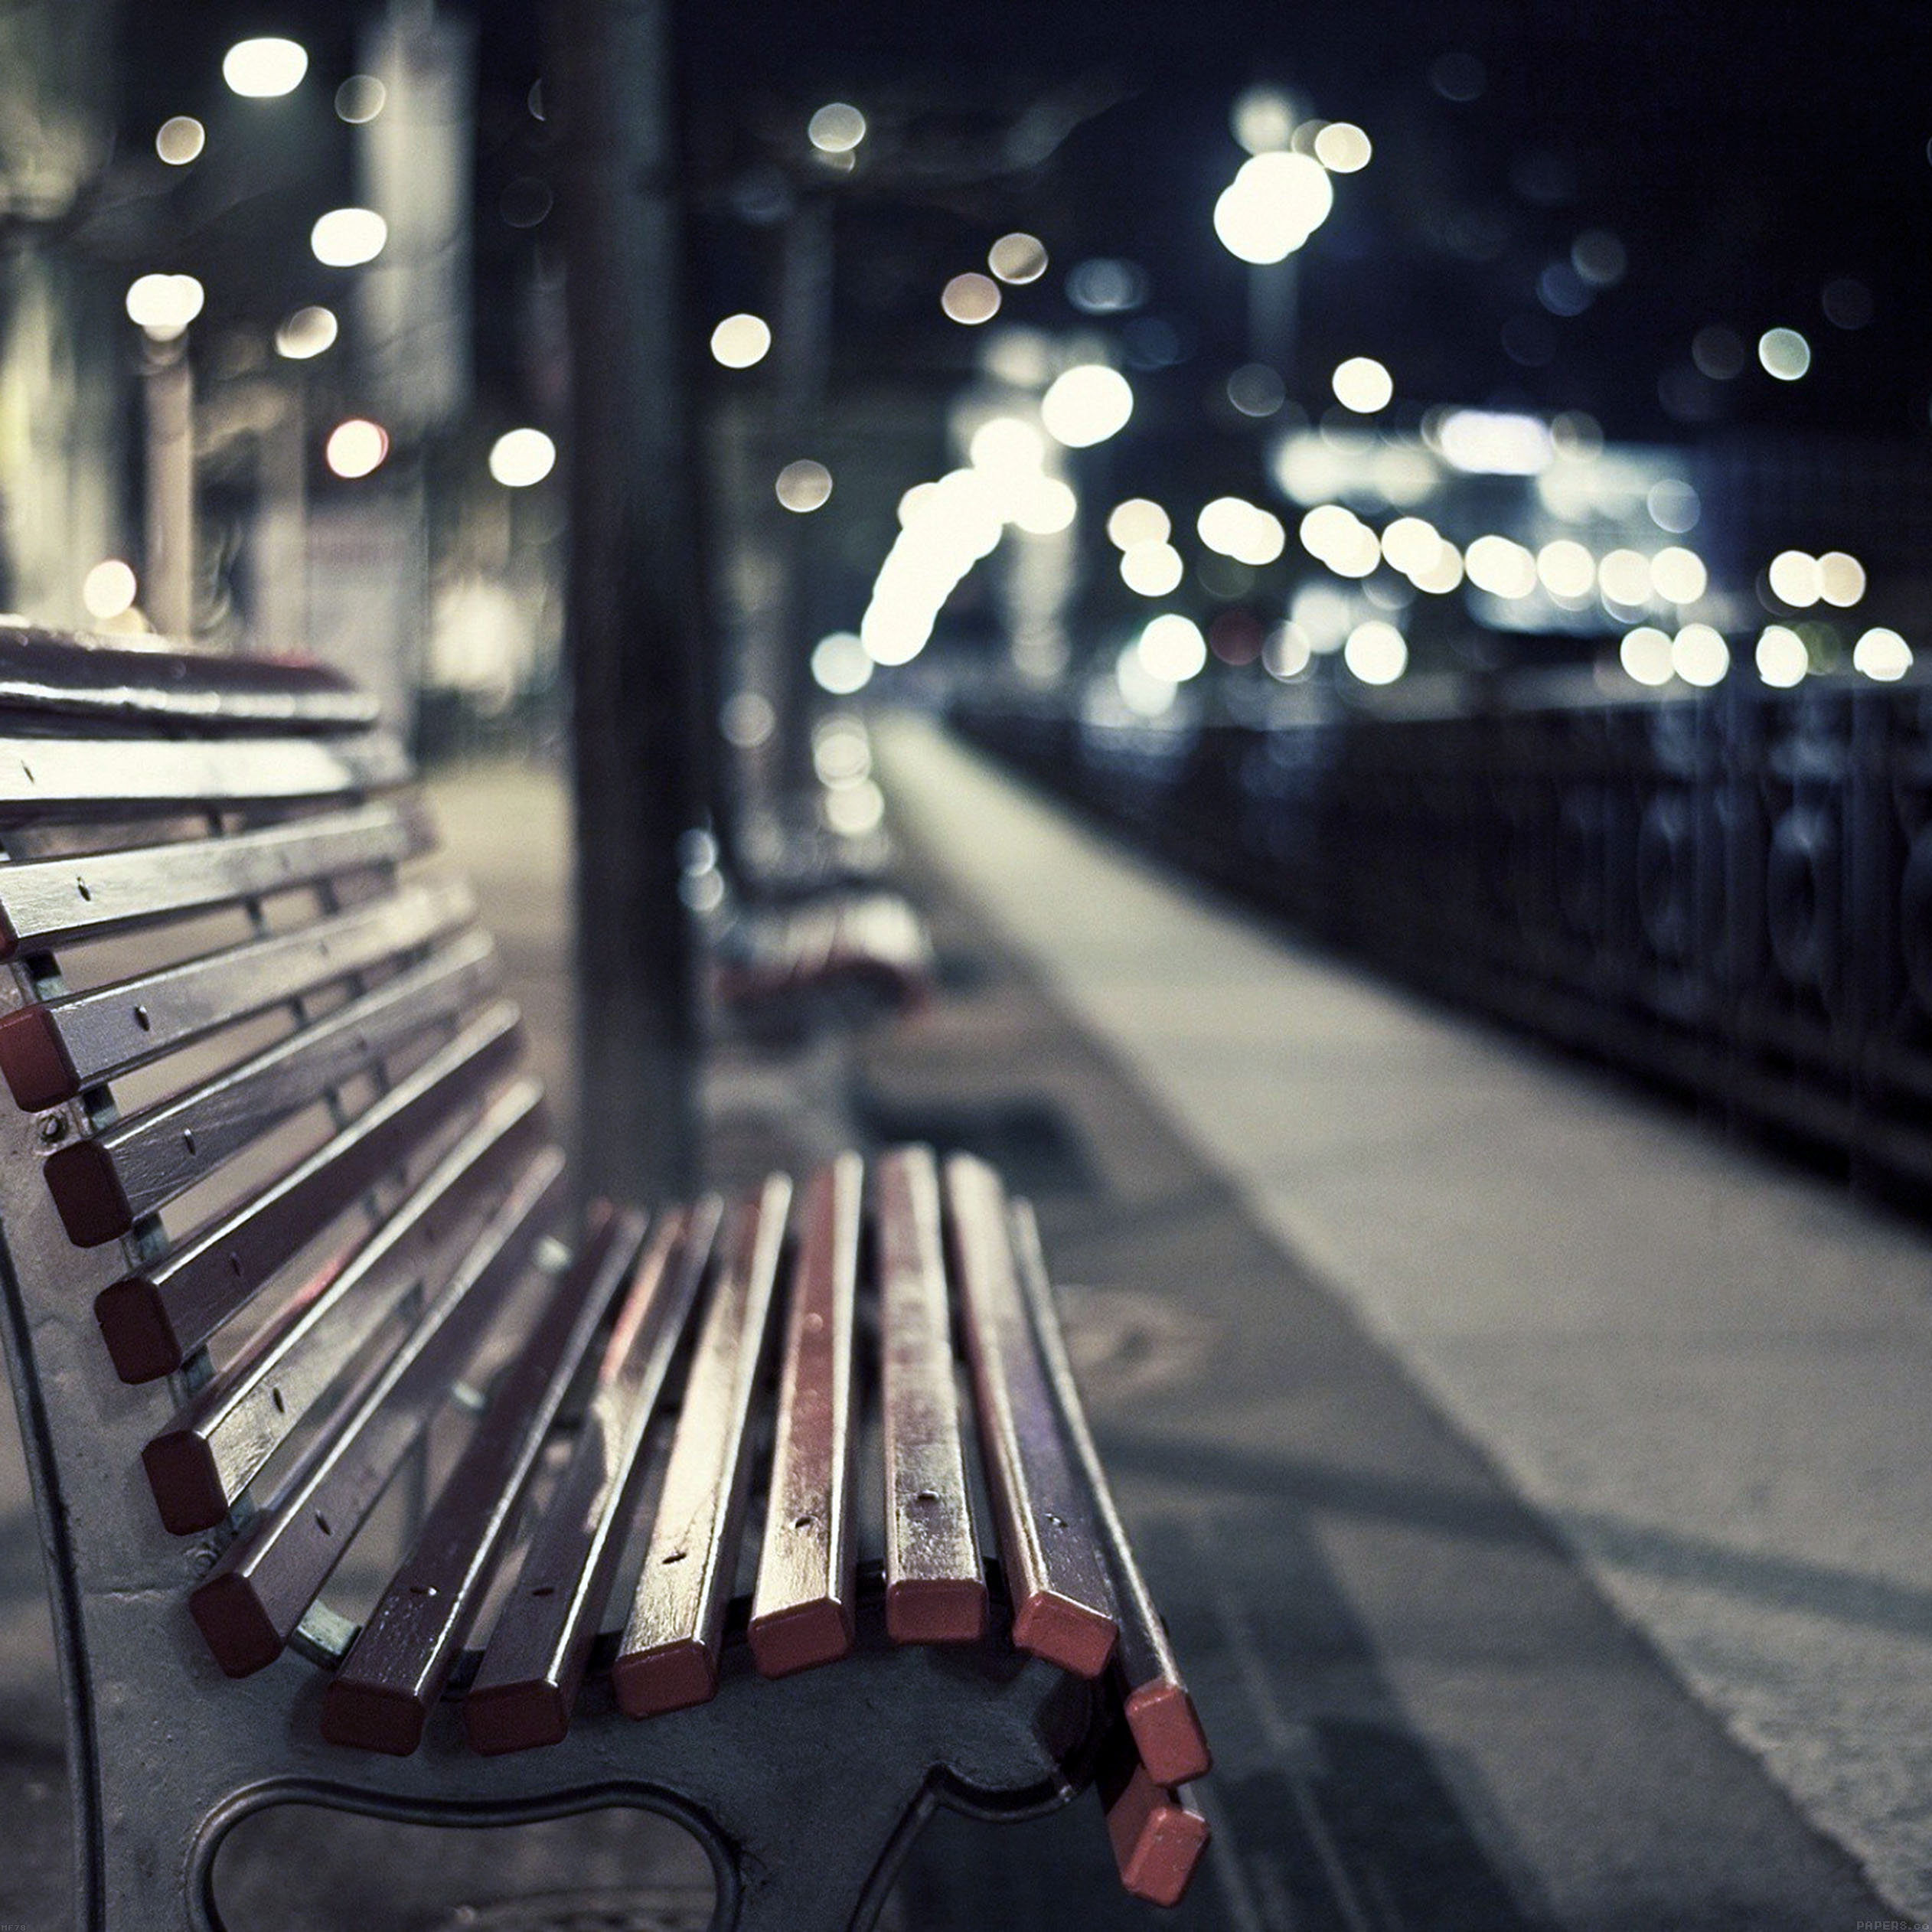 street-chair-melancholy-night-lights-bokeh-city-9-wallpaper